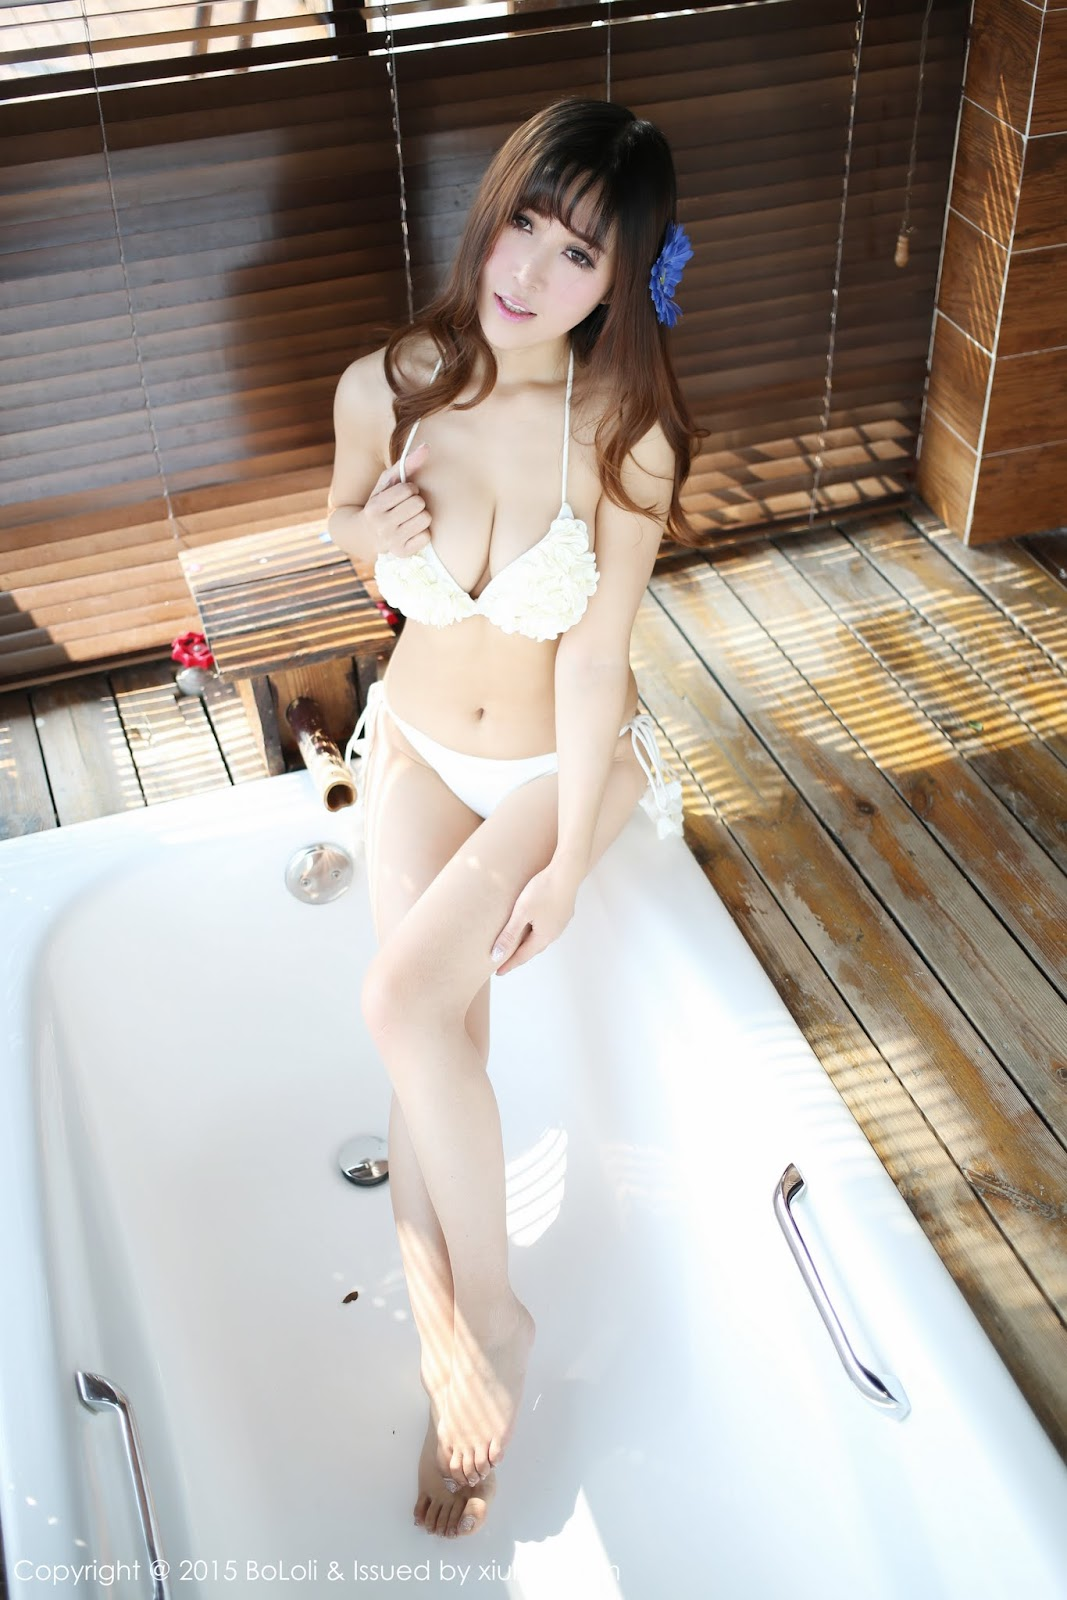 0013 - BoLoli VOL.7 Hot Girl Model